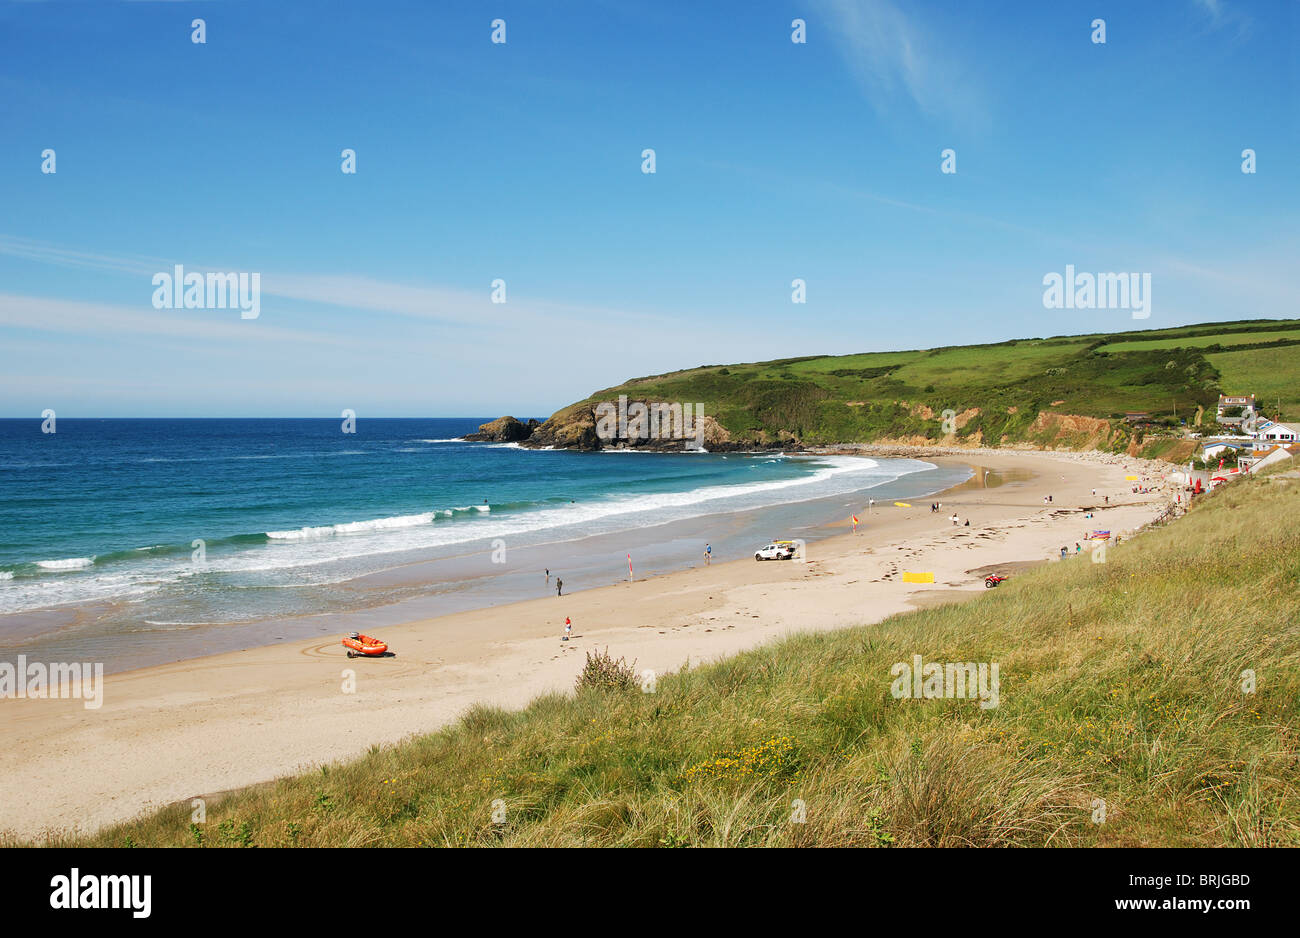 the beach at praa sands in cornwall, uk - Stock Image